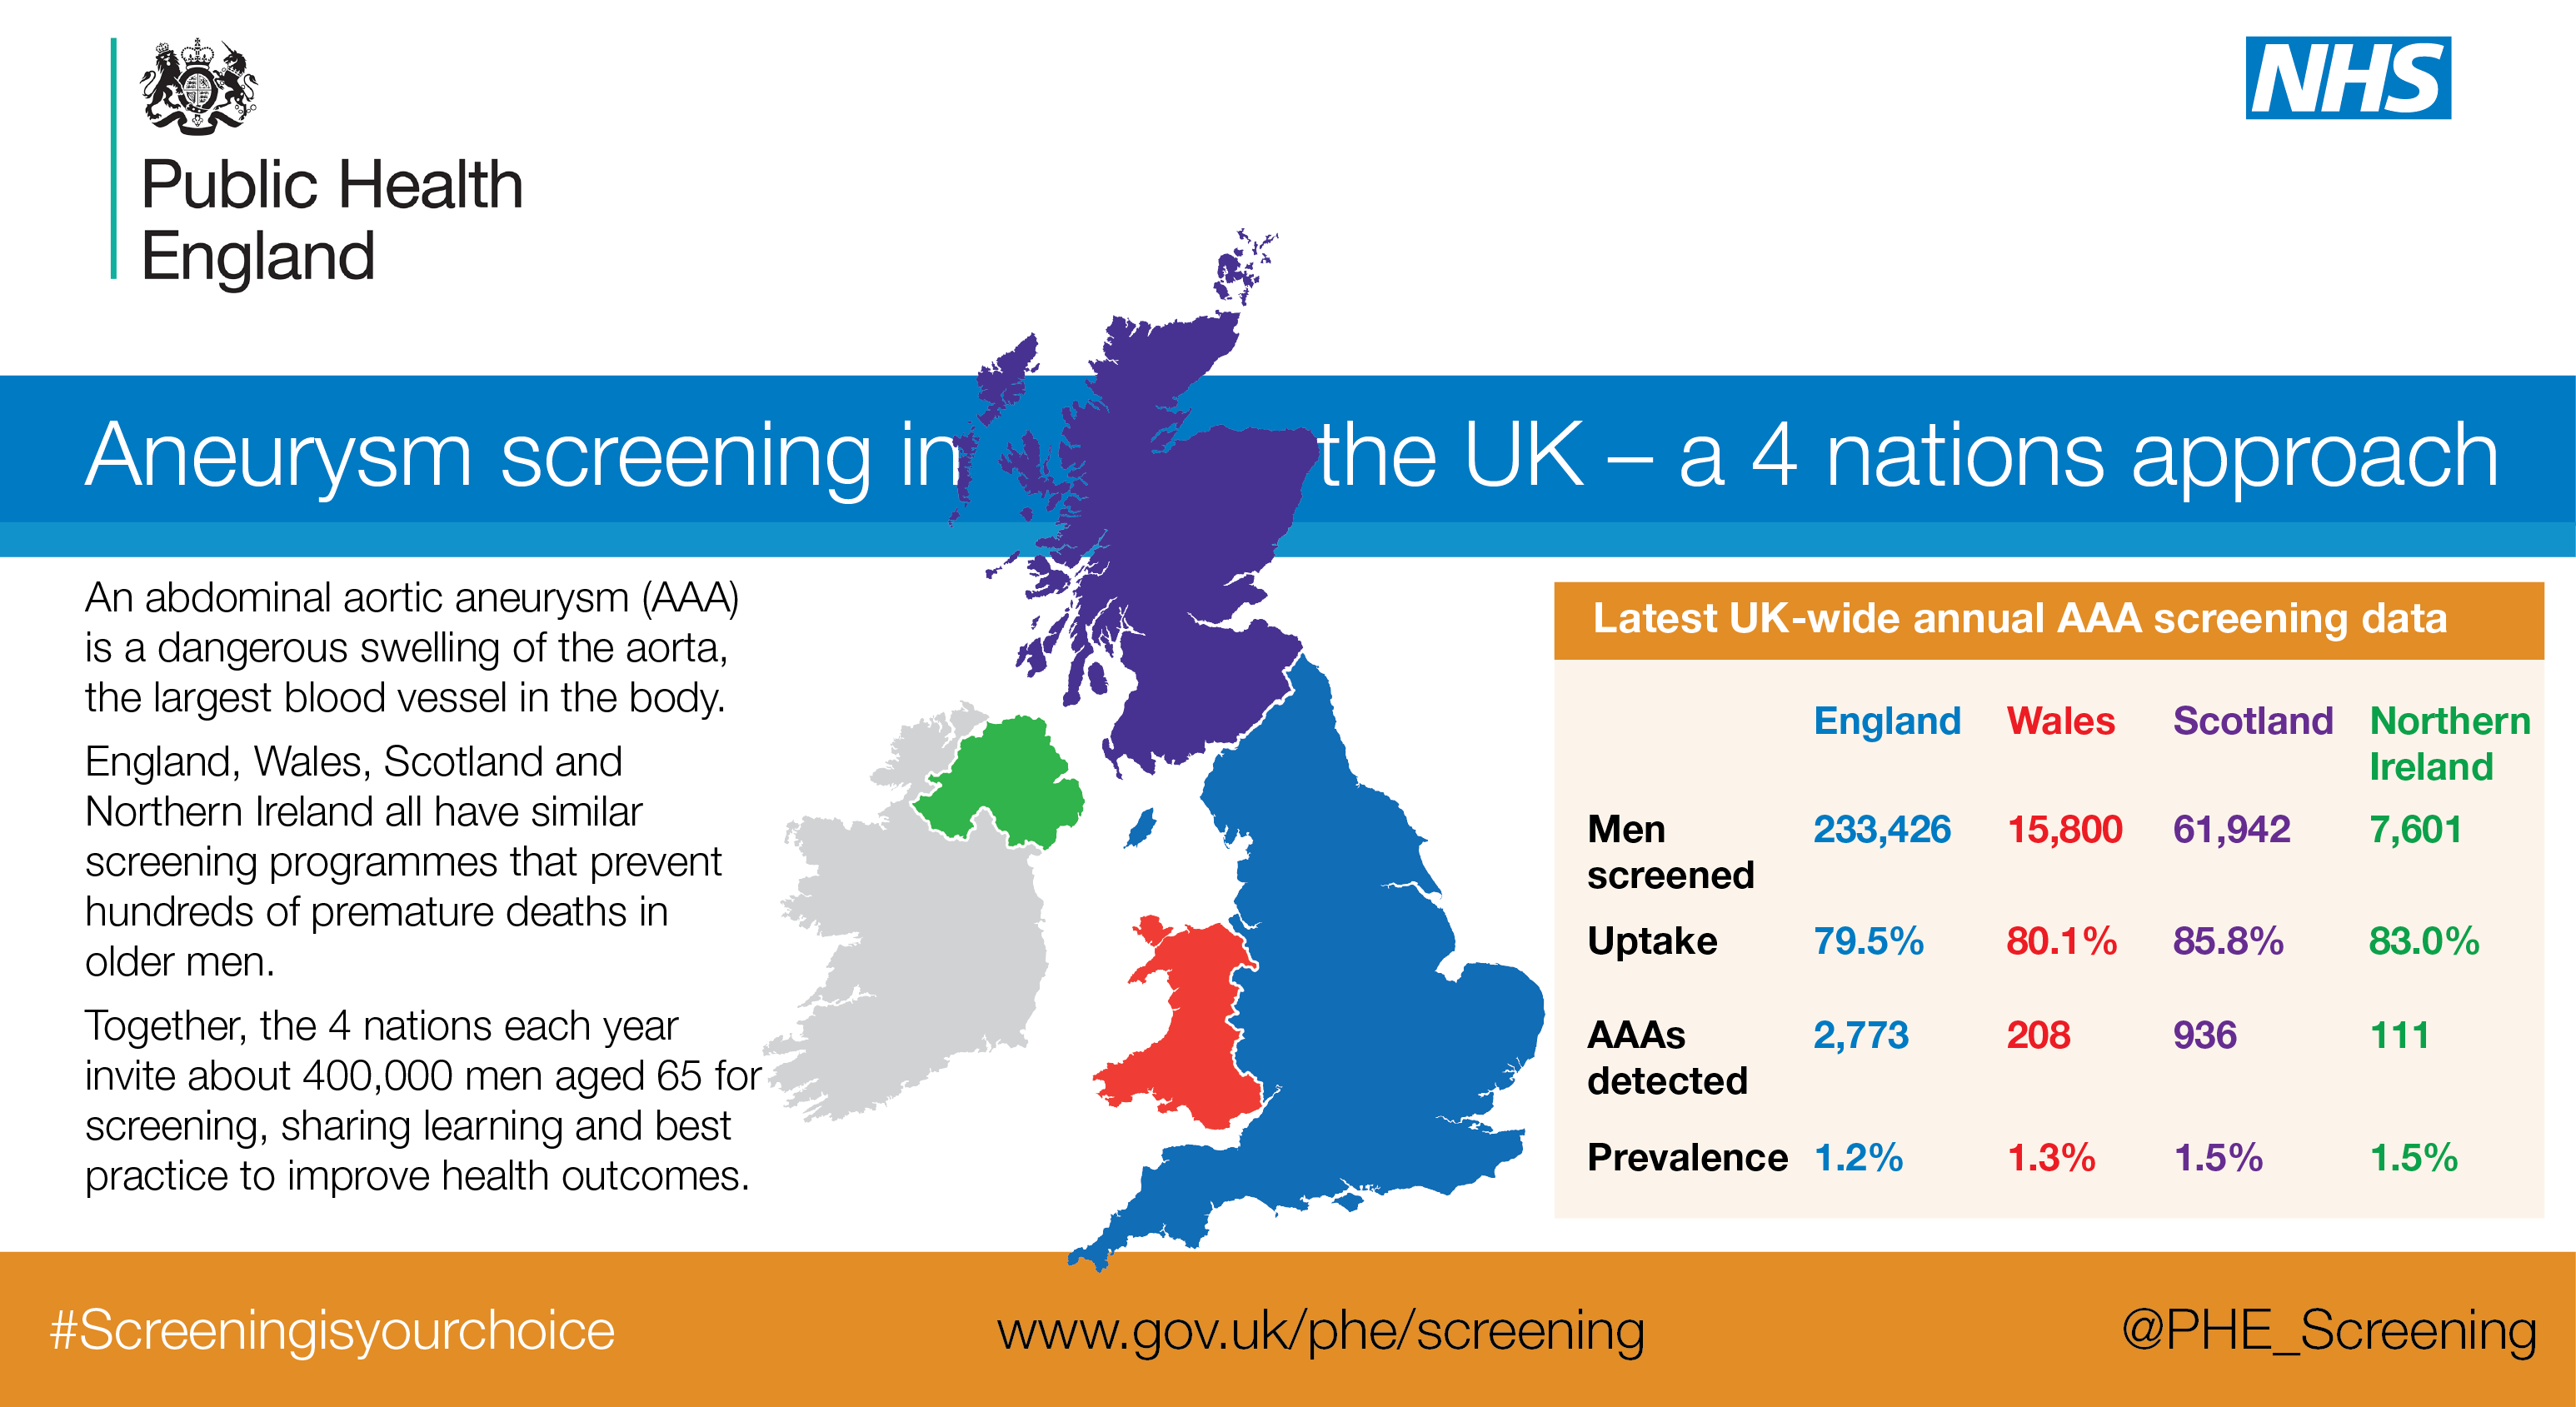 Aneurysm screening in the UK - a 4 nations approach. An abdominal aortic aneurysm (AAA) is a dangerous swelling of the aorta. England, Wales, Scotland and Northern Ireland all have similar screening programmes that prevent hundreds of premature deaths in older men. Together, the 4 nations each year invite about 400,000 men aged 65 for screening, sharing learning and best practice to improve health outcomes. The latest UK-wide annual AAA screening data shows the number of men screened is 233,426 in England, 15,800 in Wales, 61,942 in Scotland and 7,601 in Northern Ireland.